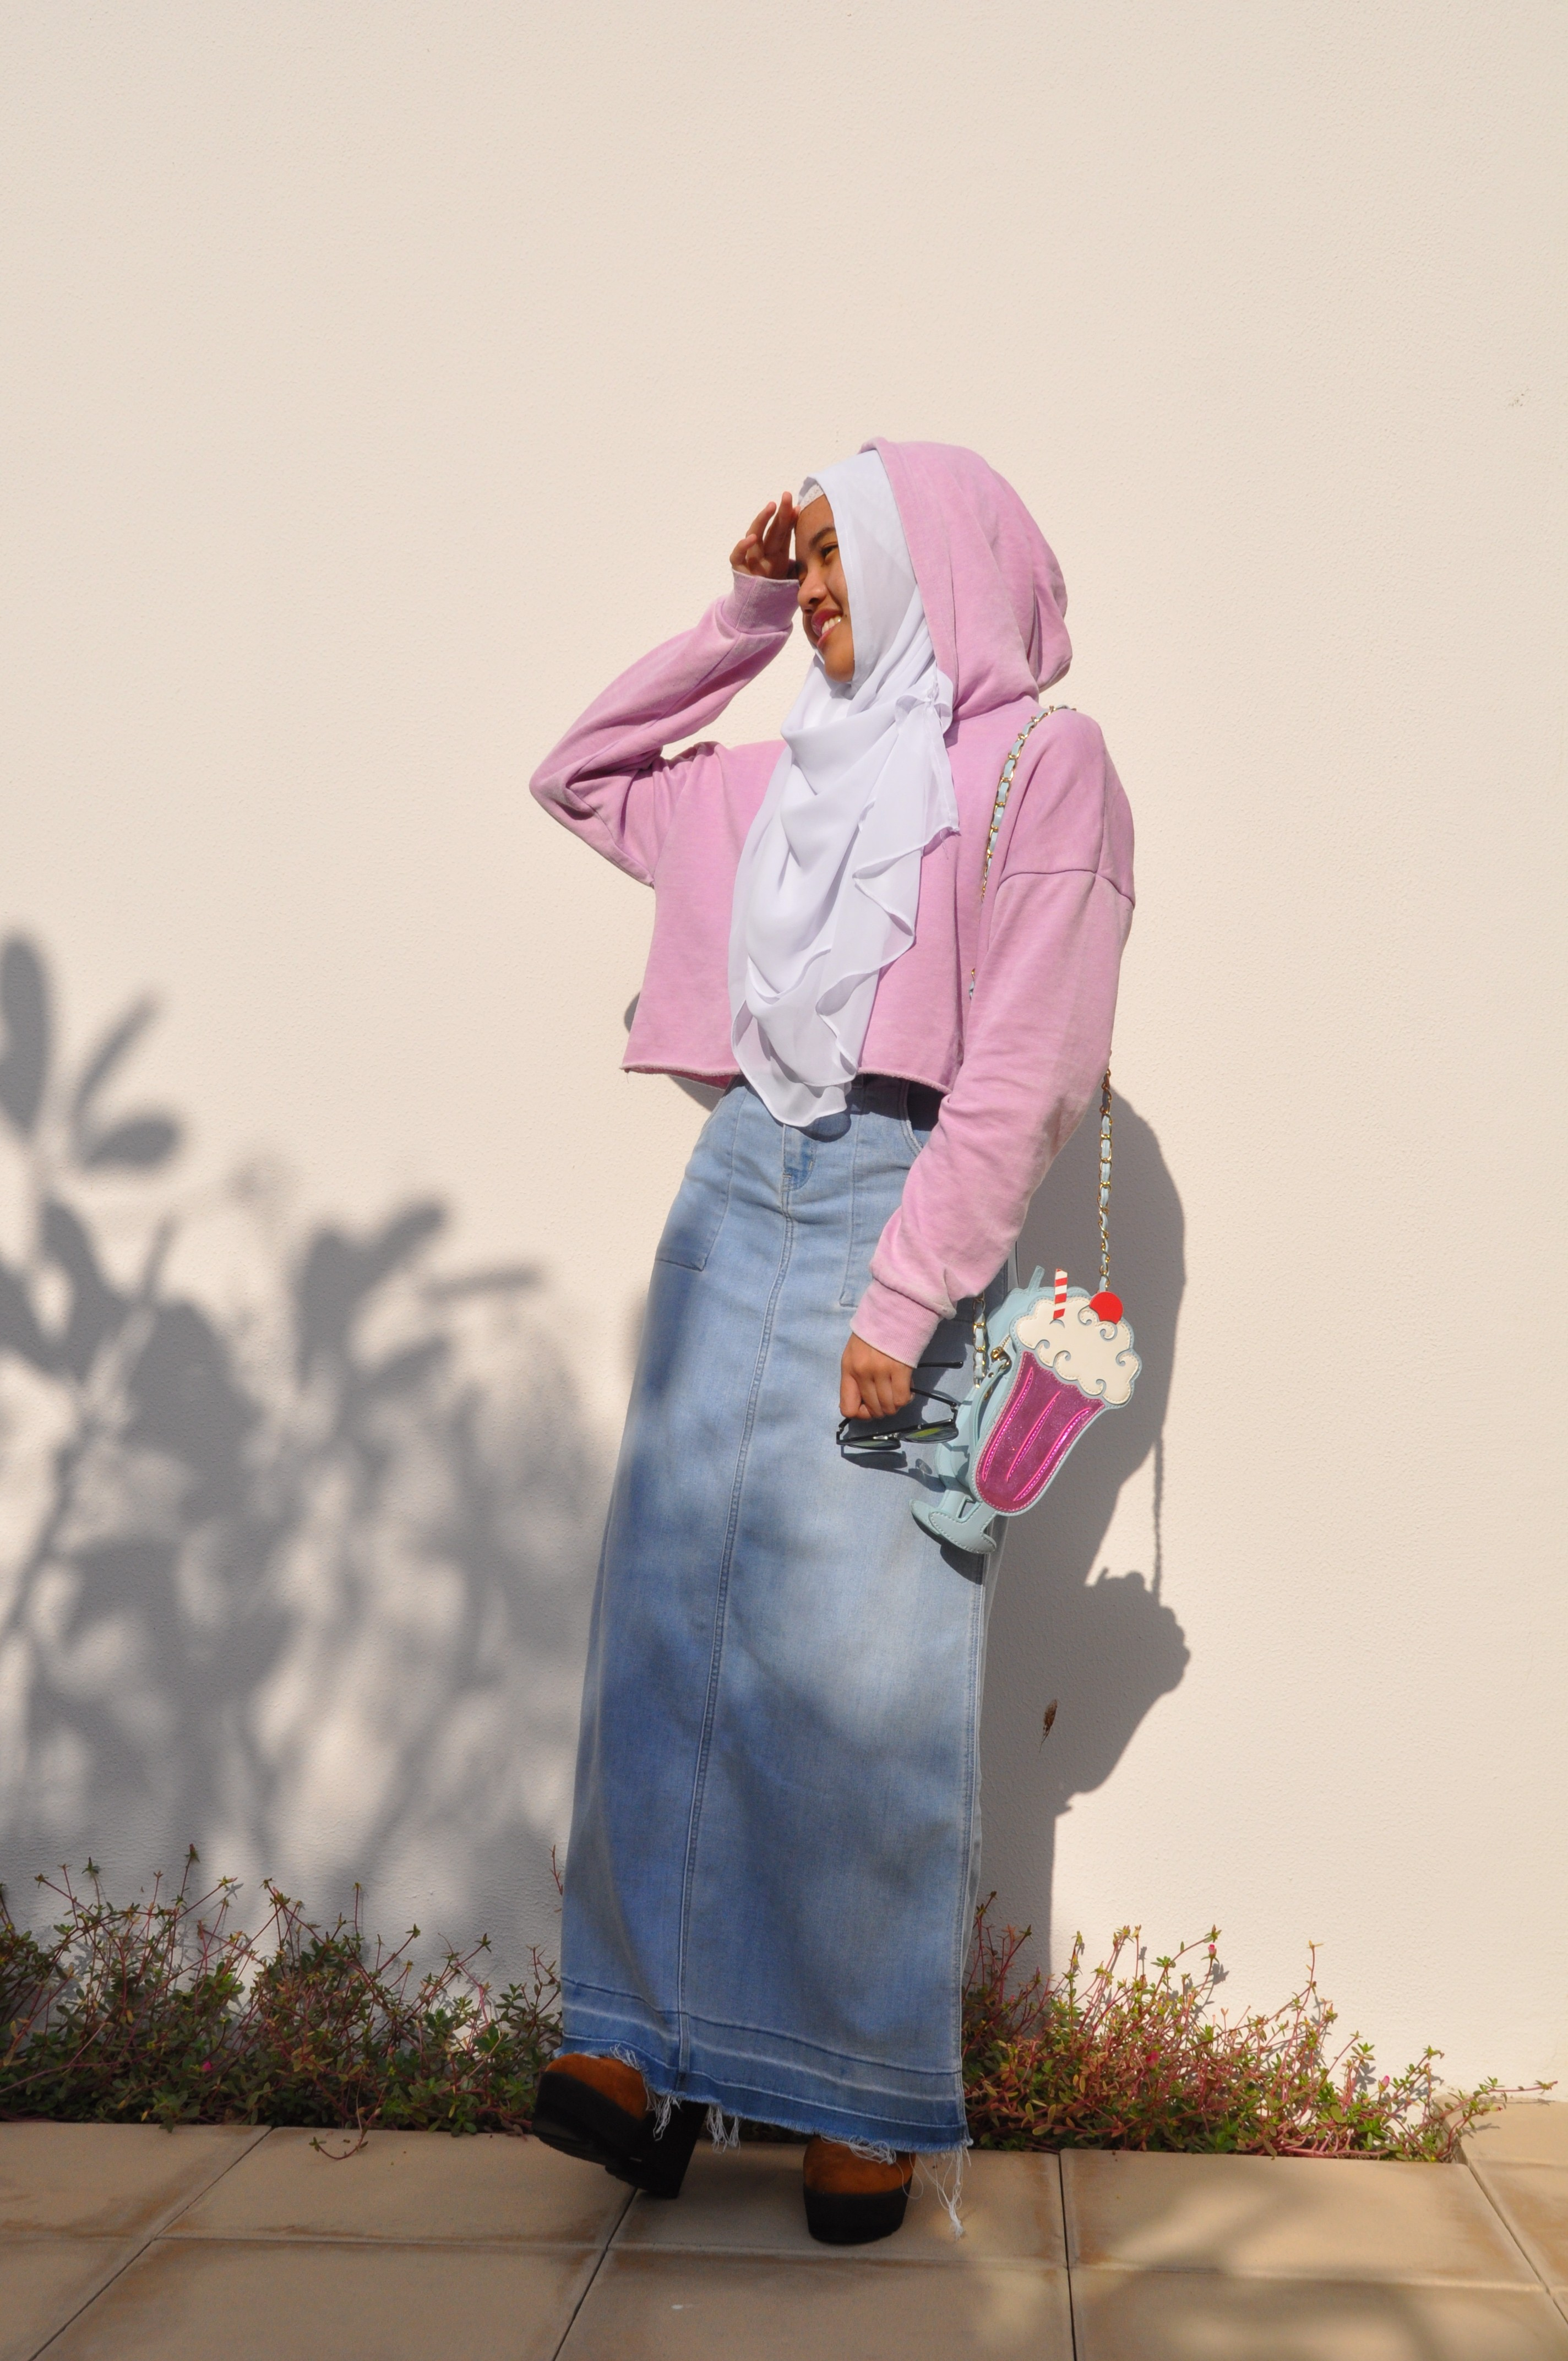 helloconchita conchita modest fashion hijab muslimah muslim girl